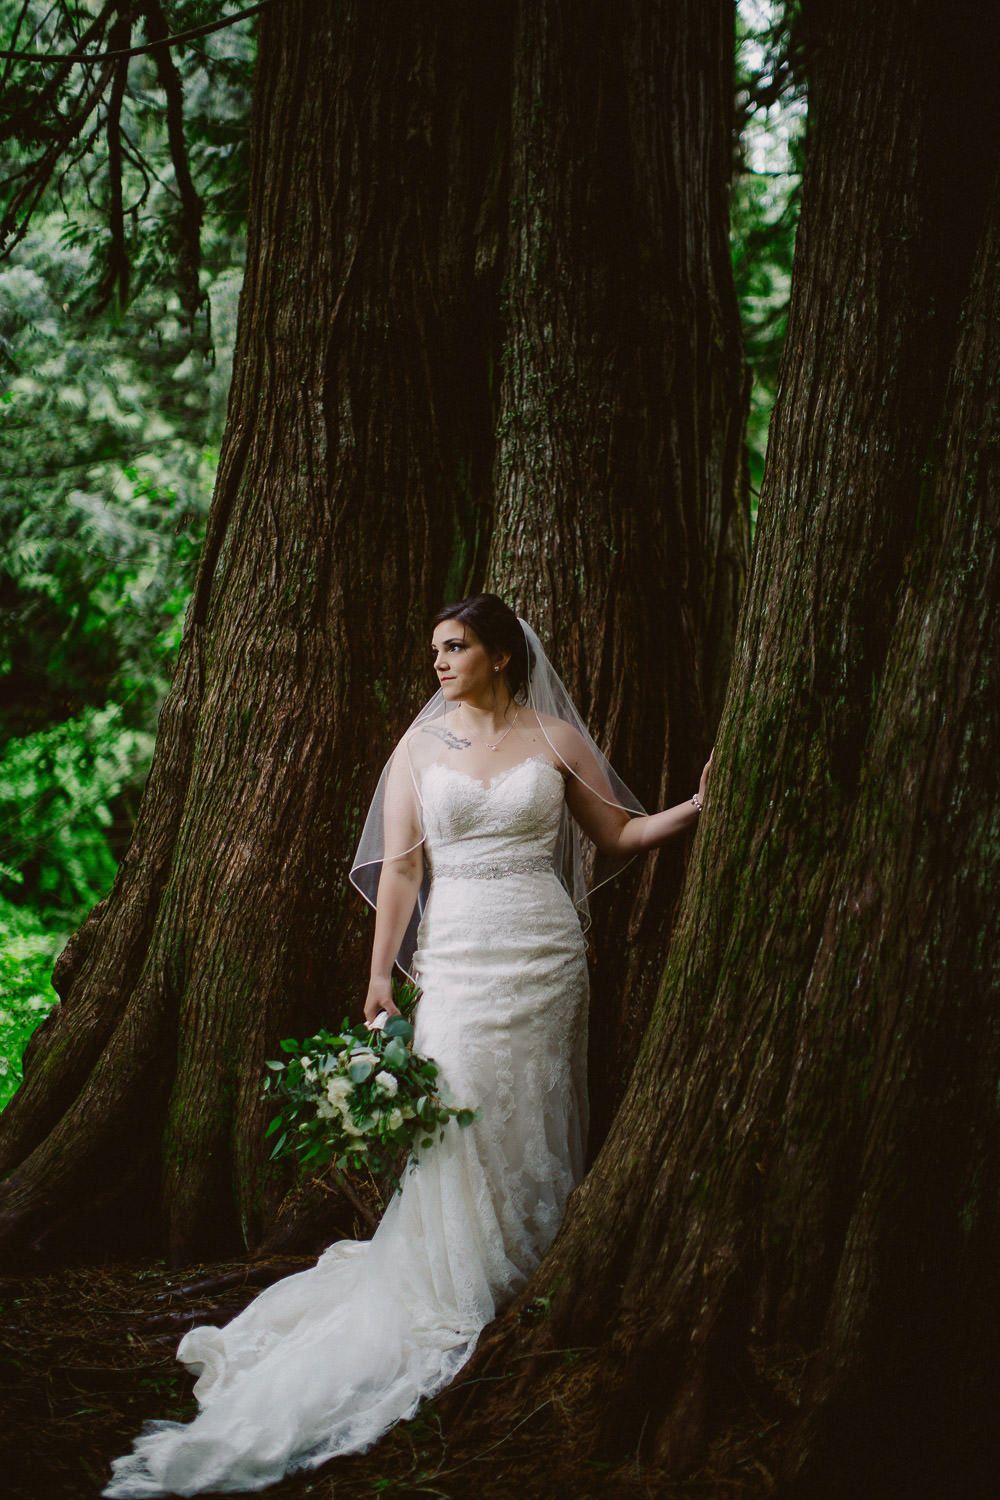 Bride holding bouquet in magical forest